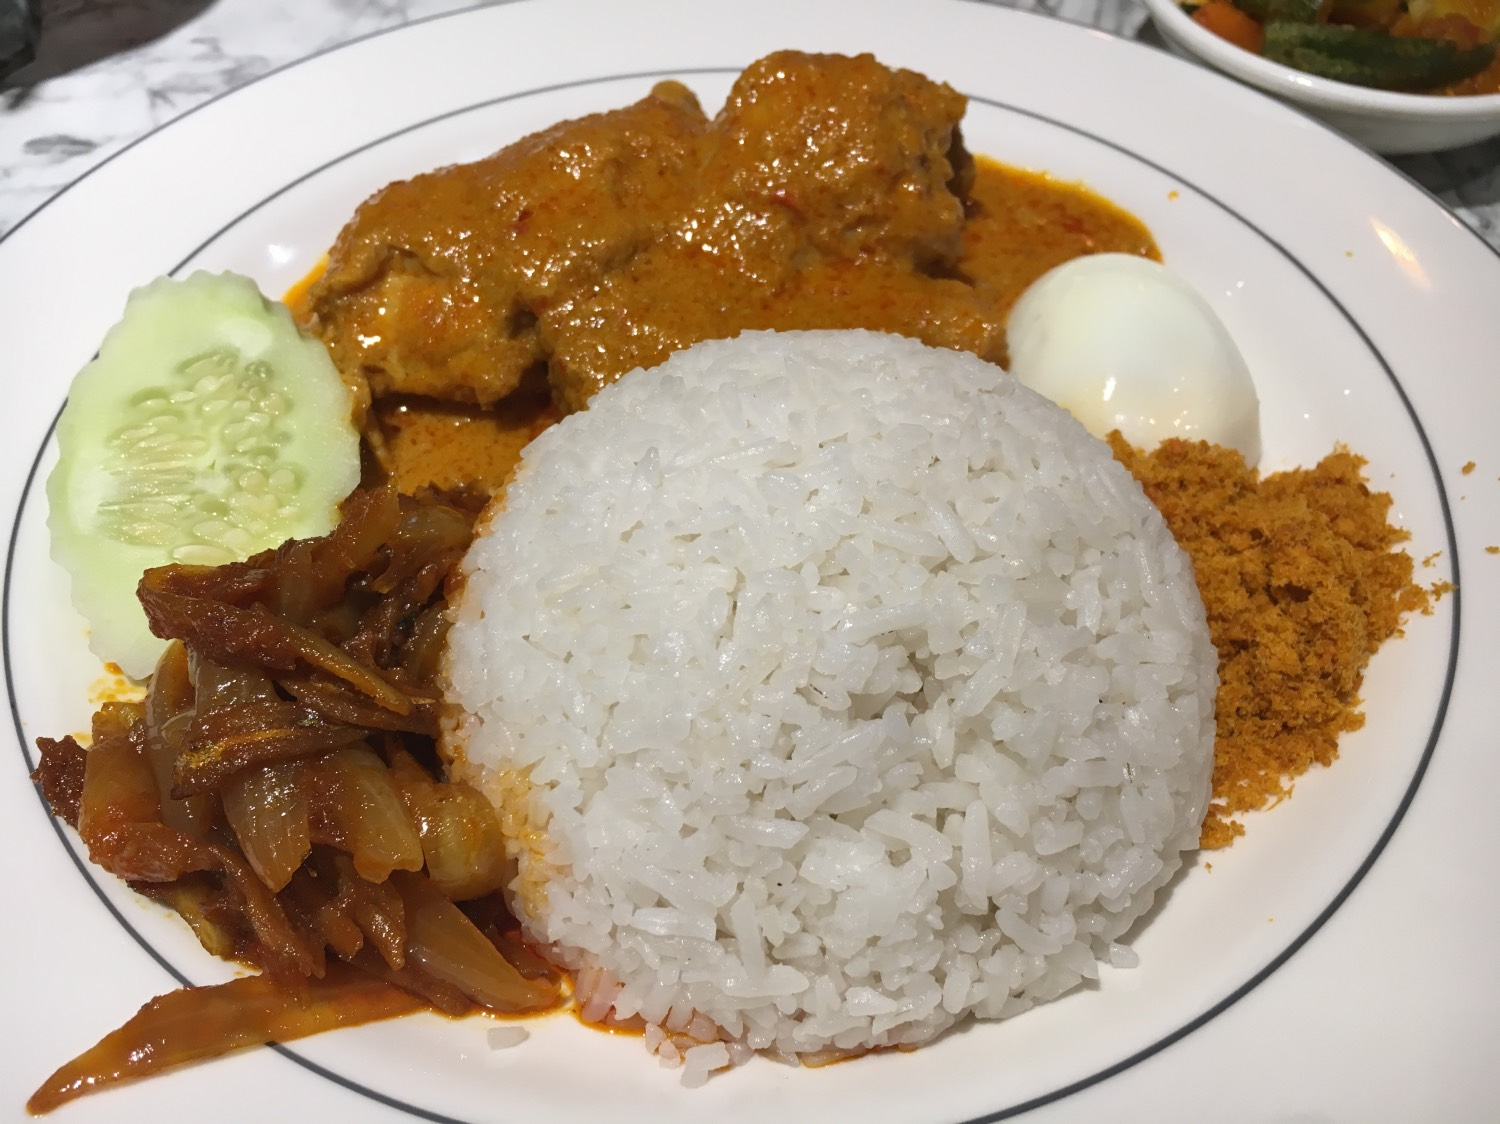 traditional Malay breakfast - Nasi Lemak. This is one of the best things to do in Kuala Lumpur, Malaysa in 2 days. Read the article for a complete 2-day itinerary for KL. #kl #malaysia. #klitinerary #2daykualalumpur #kualalumpurguide #kualalumpurtraveling #kualalumpuritinerary #klitinerary